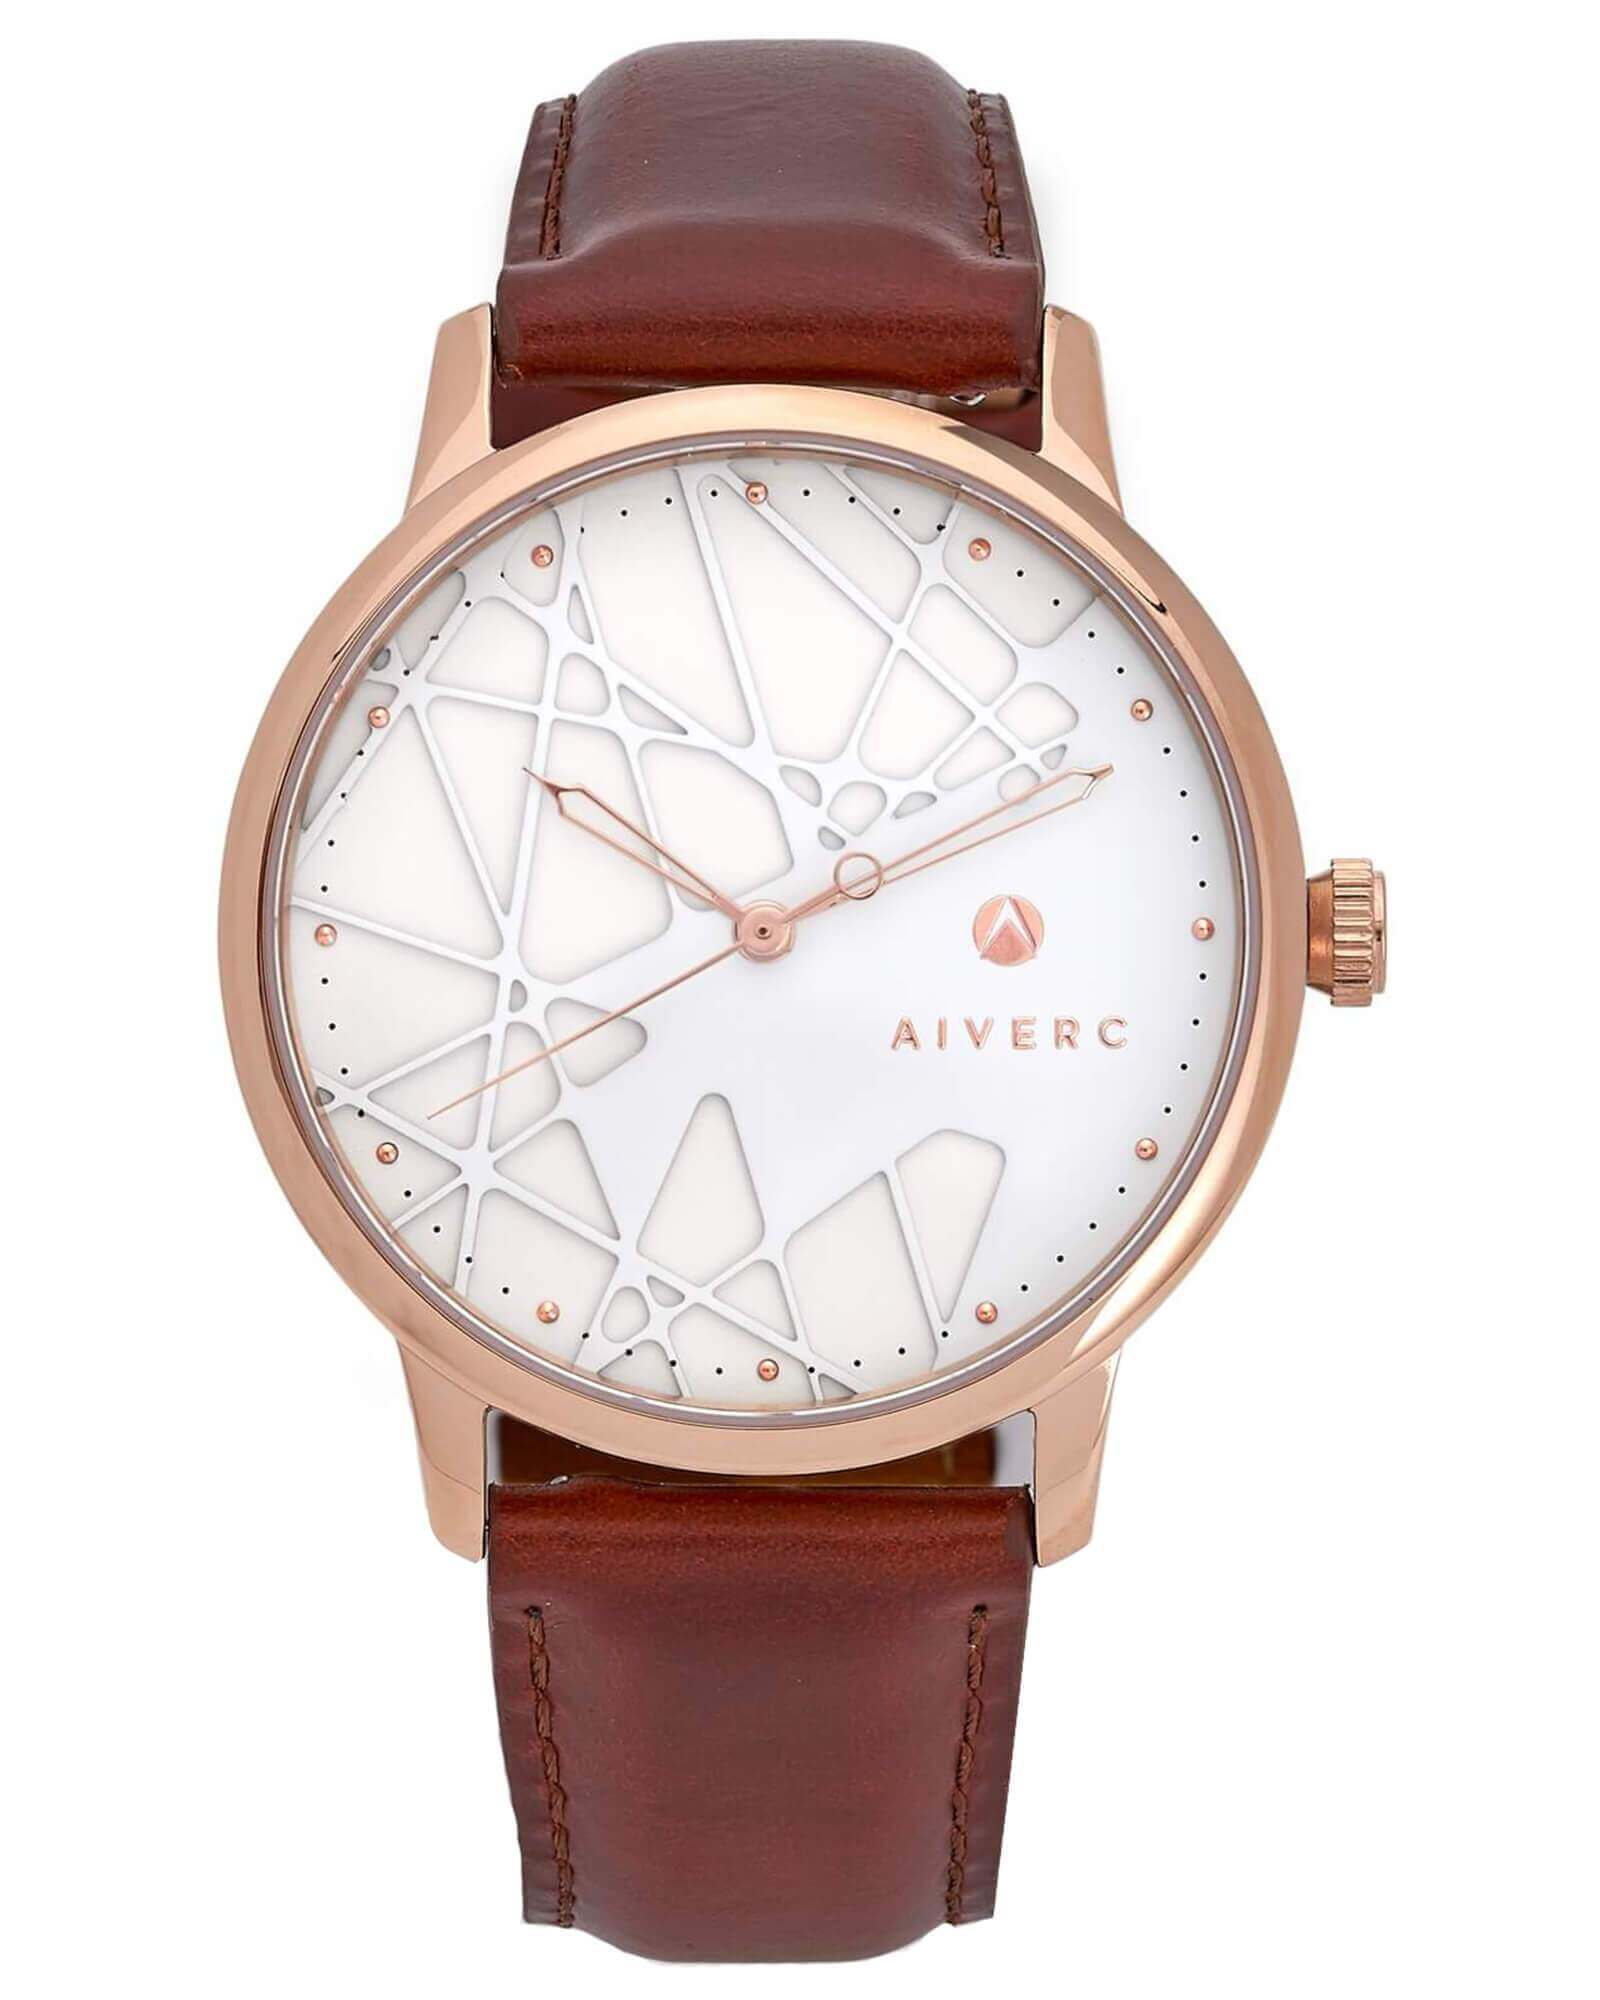 Opera Classic Rose Gold - 40mm - Aiverc | Designer Watches